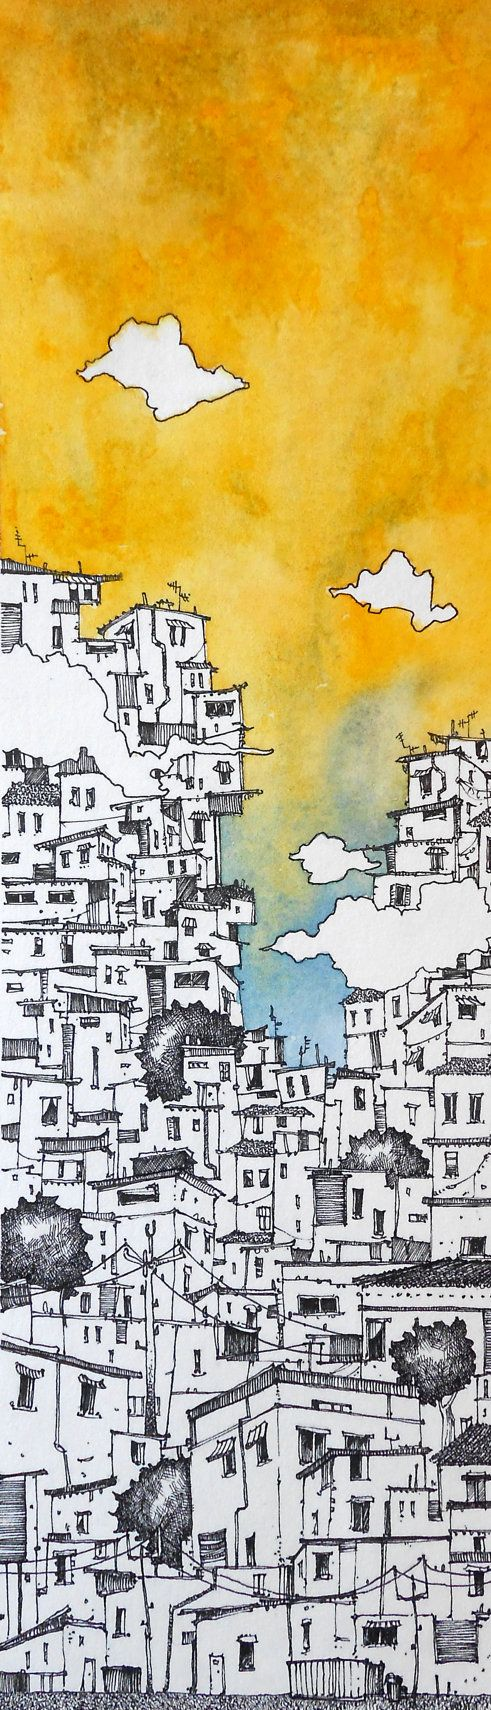 Sunny Favelas, Original Pen and Ink Watercolor Illustration by Duncan Halleck 37cm x 13.5cm - duncanhalleck.com